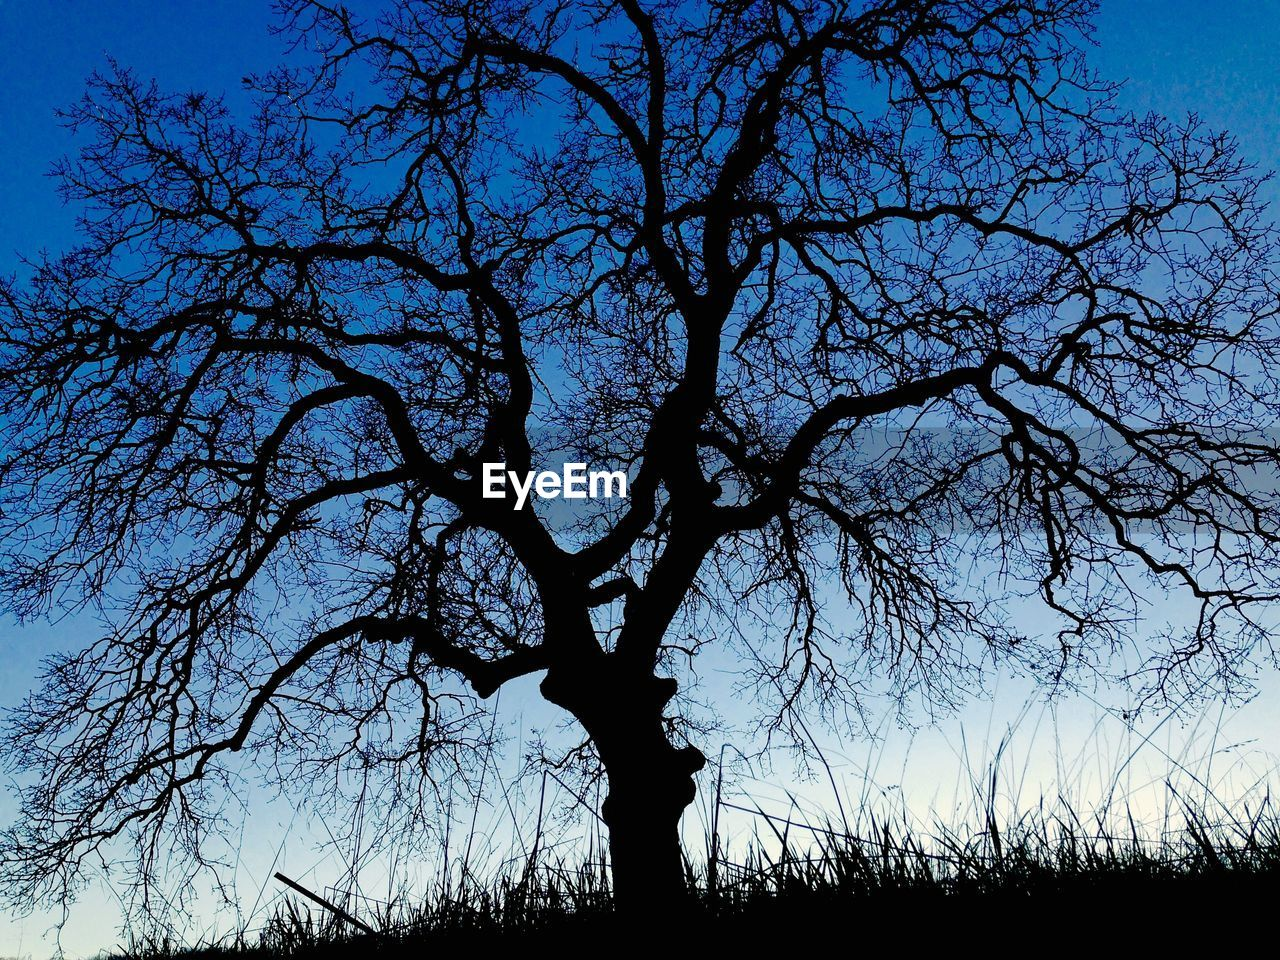 tree, bare tree, silhouette, sky, outdoors, nature, beauty in nature, tranquility, no people, scenics, blue, low angle view, branch, day, landscape, clear sky